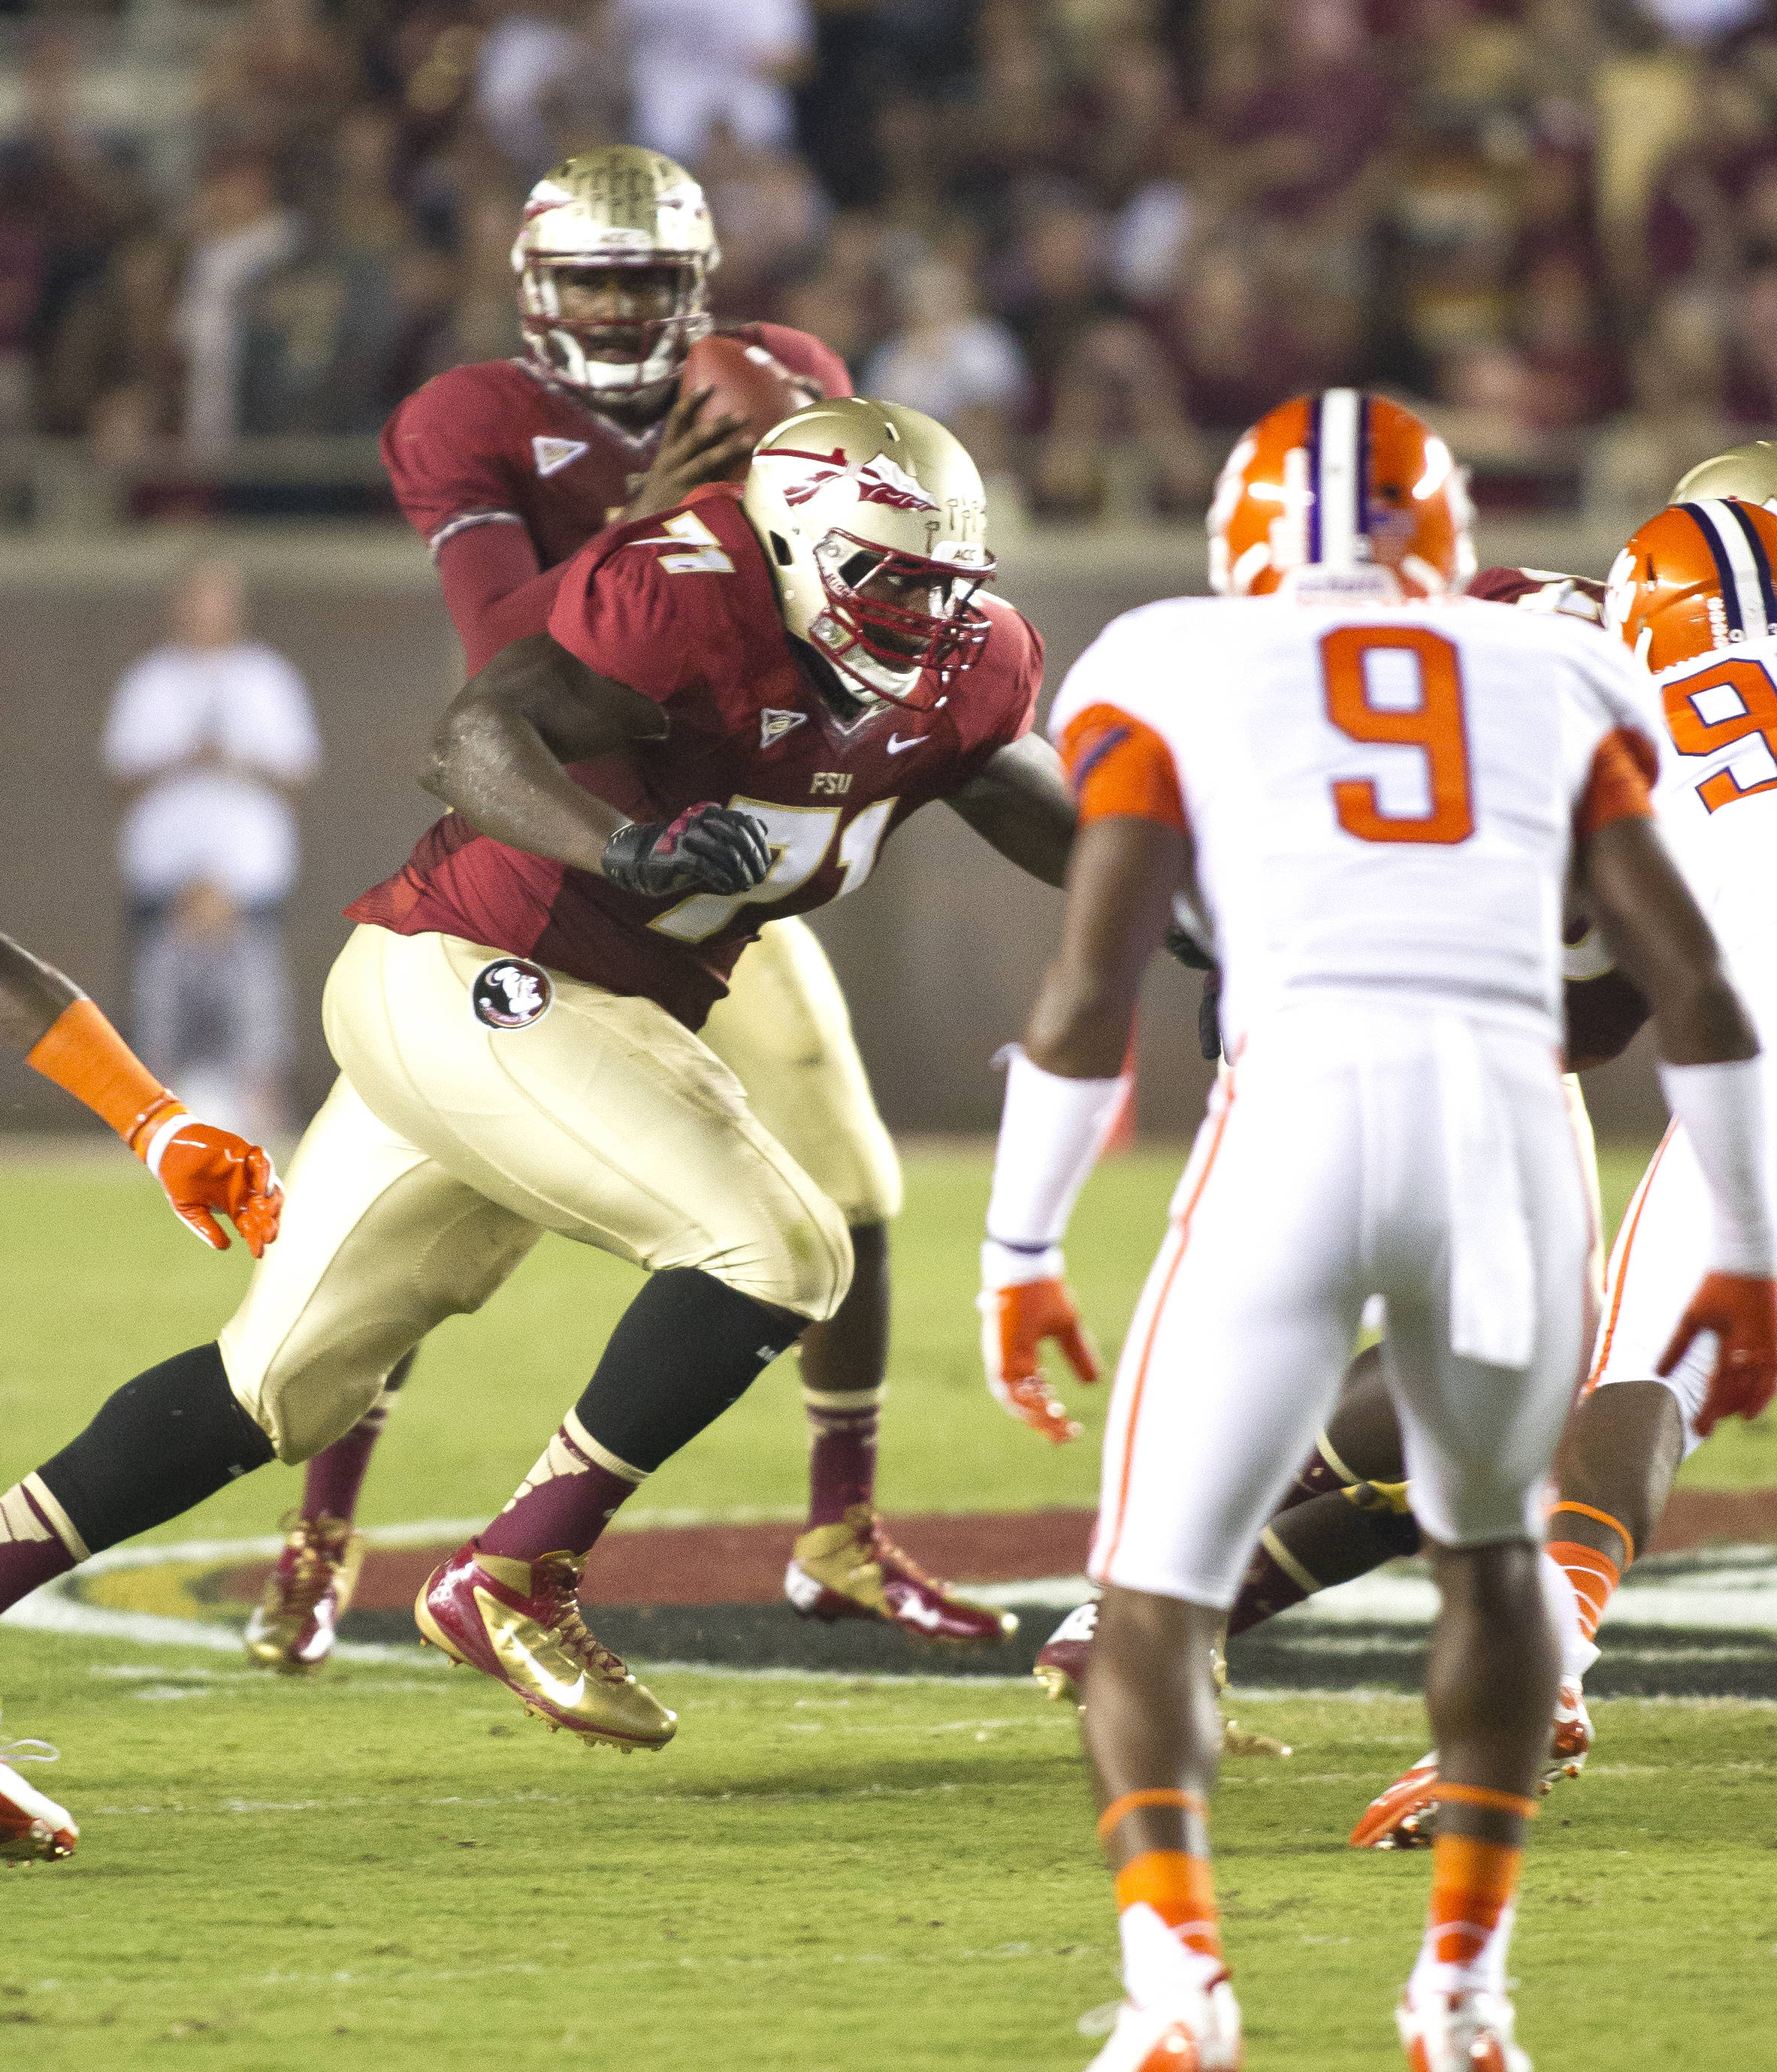 Menelik Watson (71) blockingFSU vs Clemson, 9/22/12 (Photo by Steve Musco)